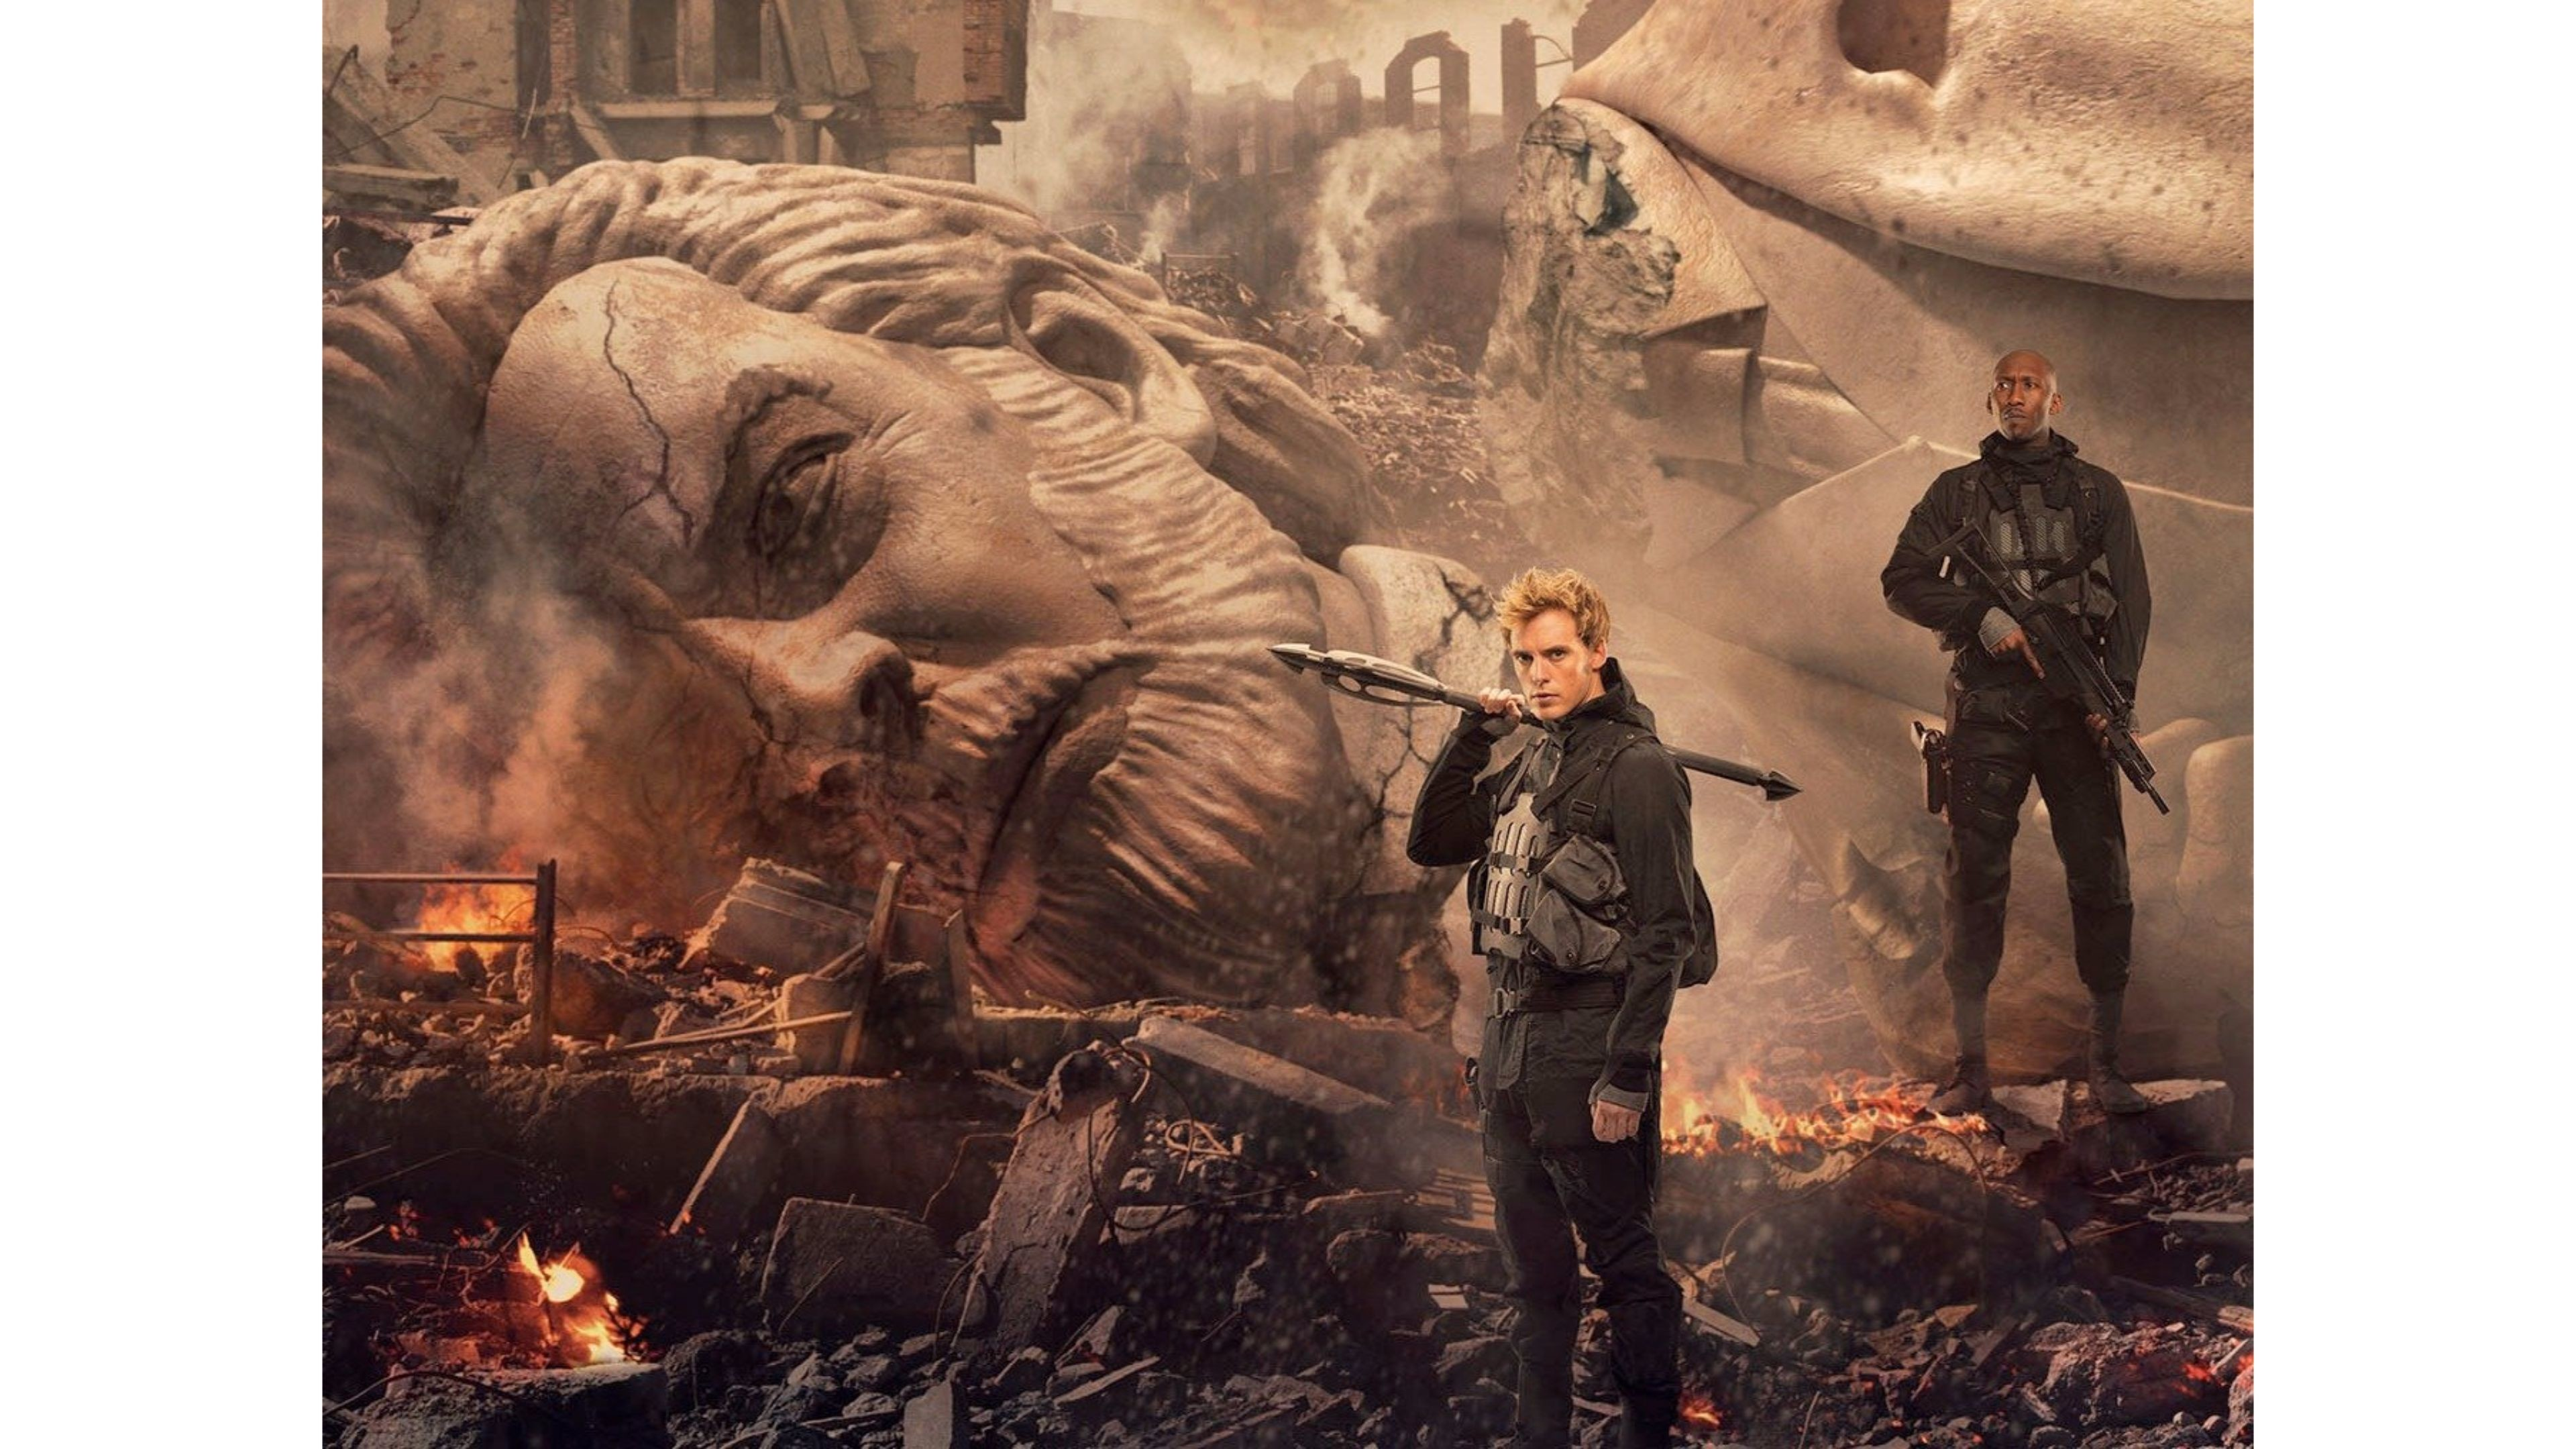 3840x2160 Download Free The Hunger Games Mockingjay Part 2 4K Wallpaper